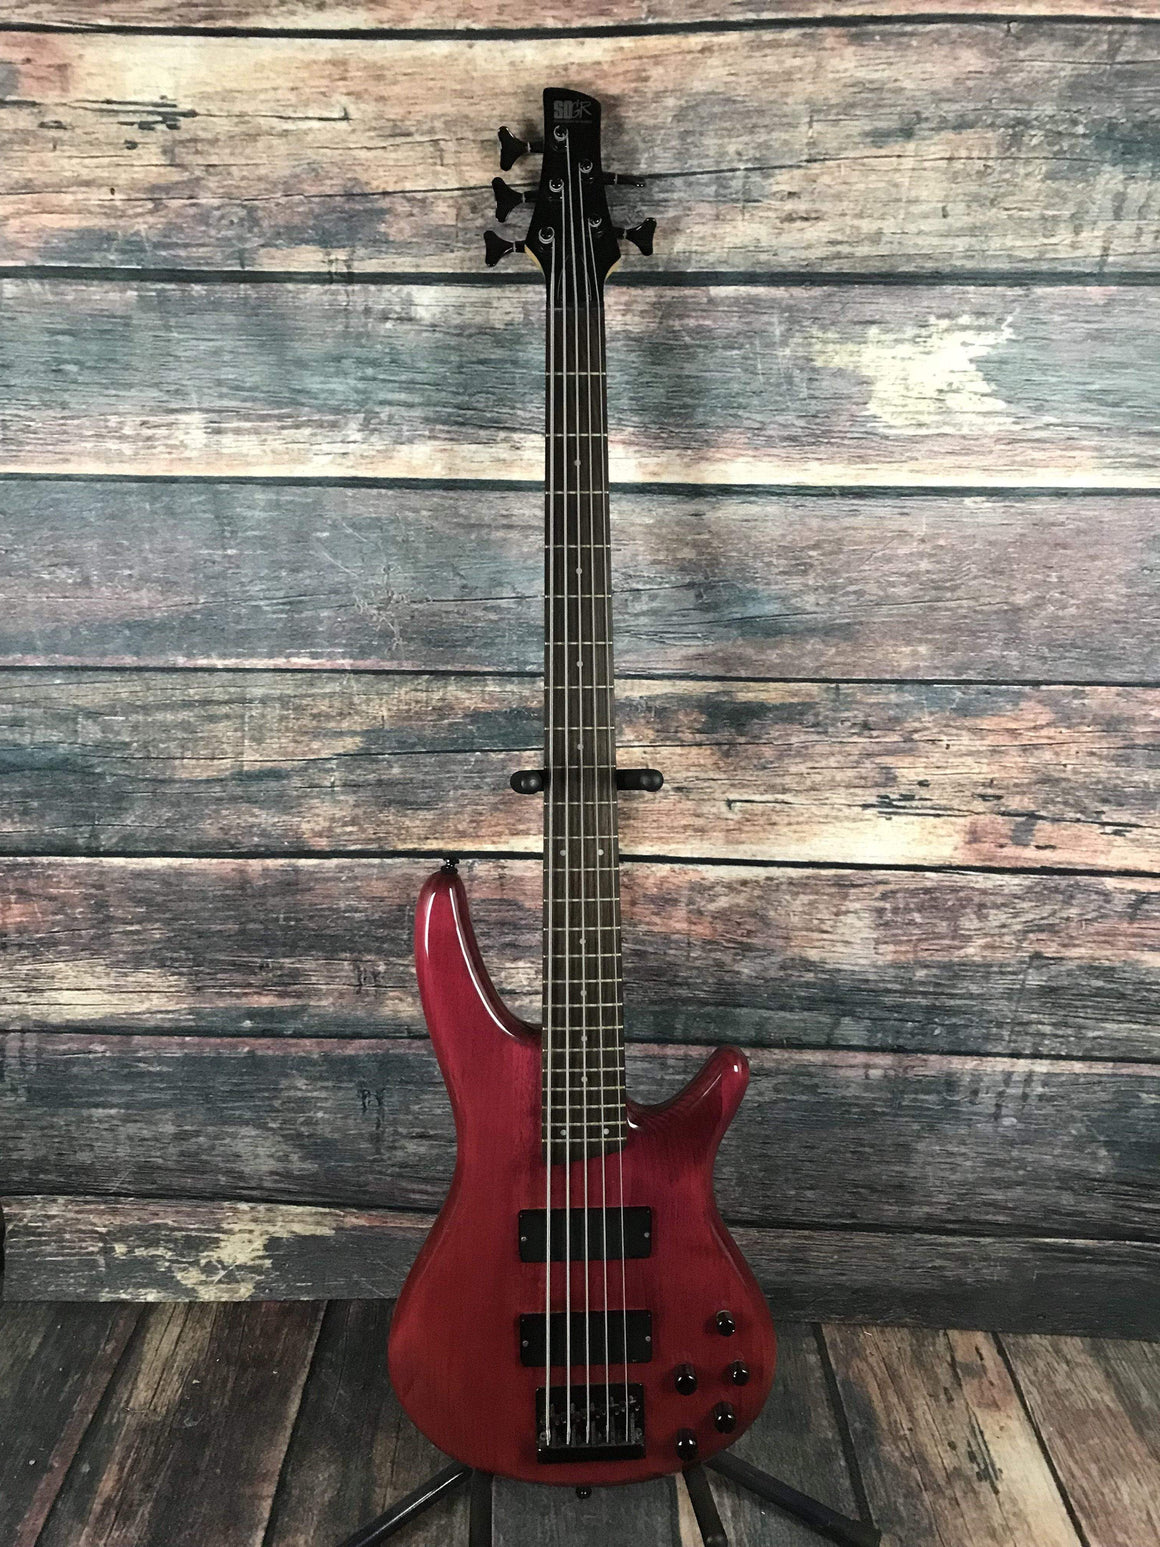 Ibanez Electric Bass Used Ibanez SR405 5 String Electric Bass with Ibanez Case